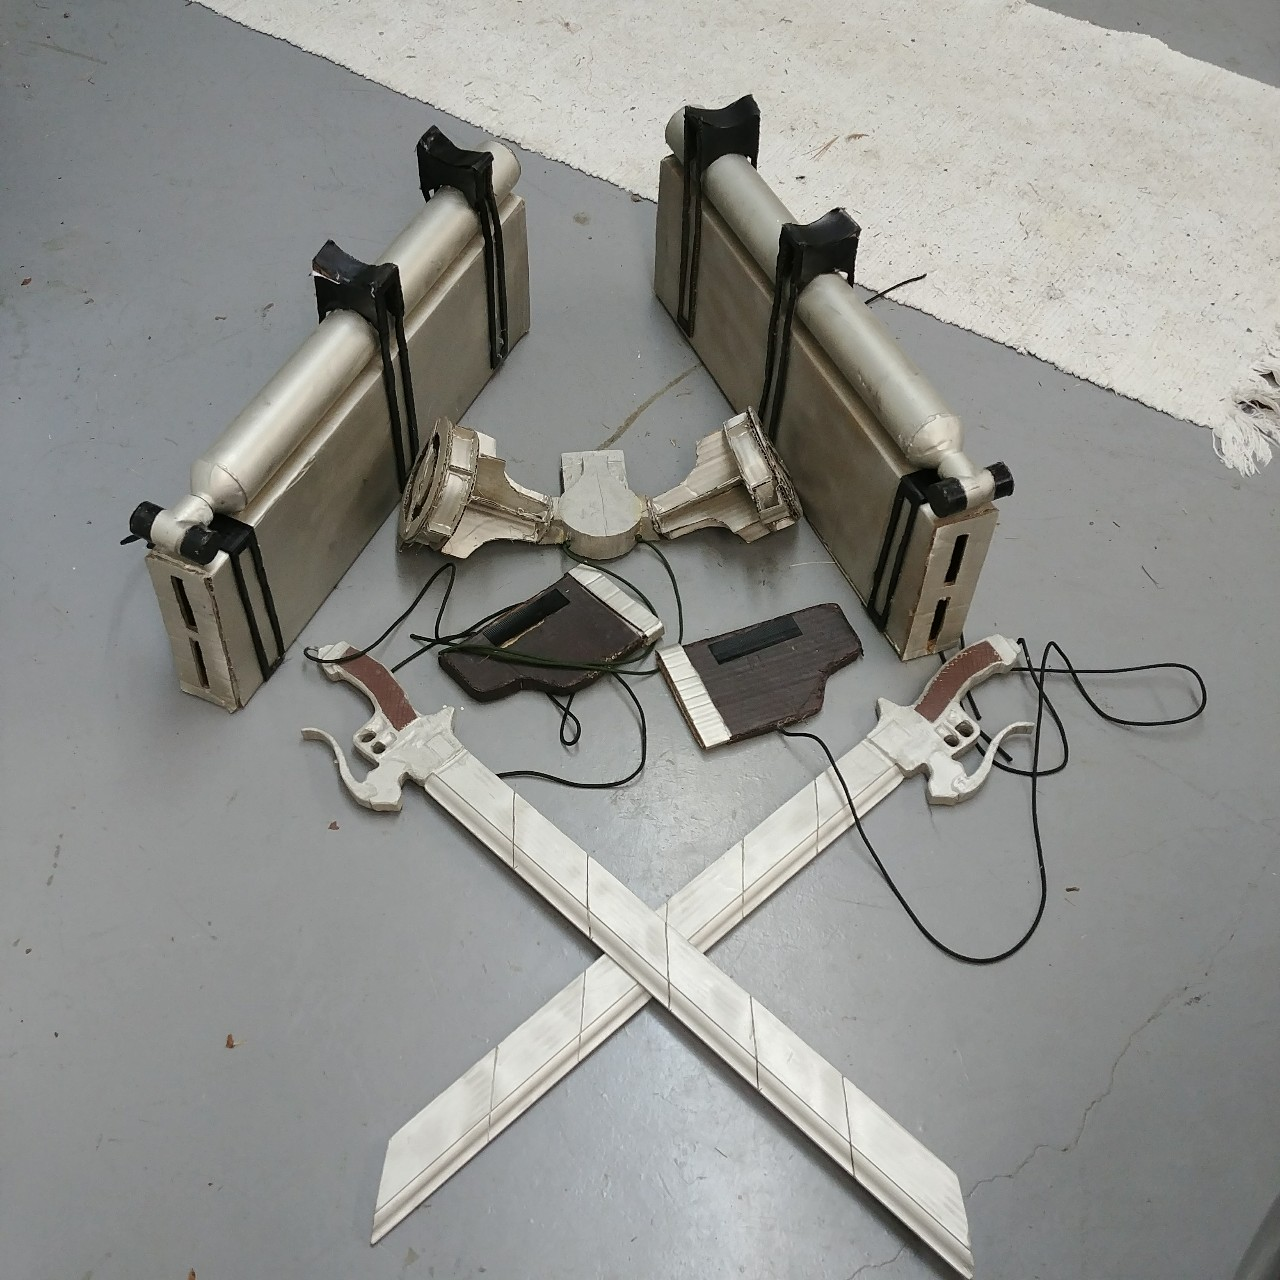 Attack On Titan 3d Maneuver Gear That Works